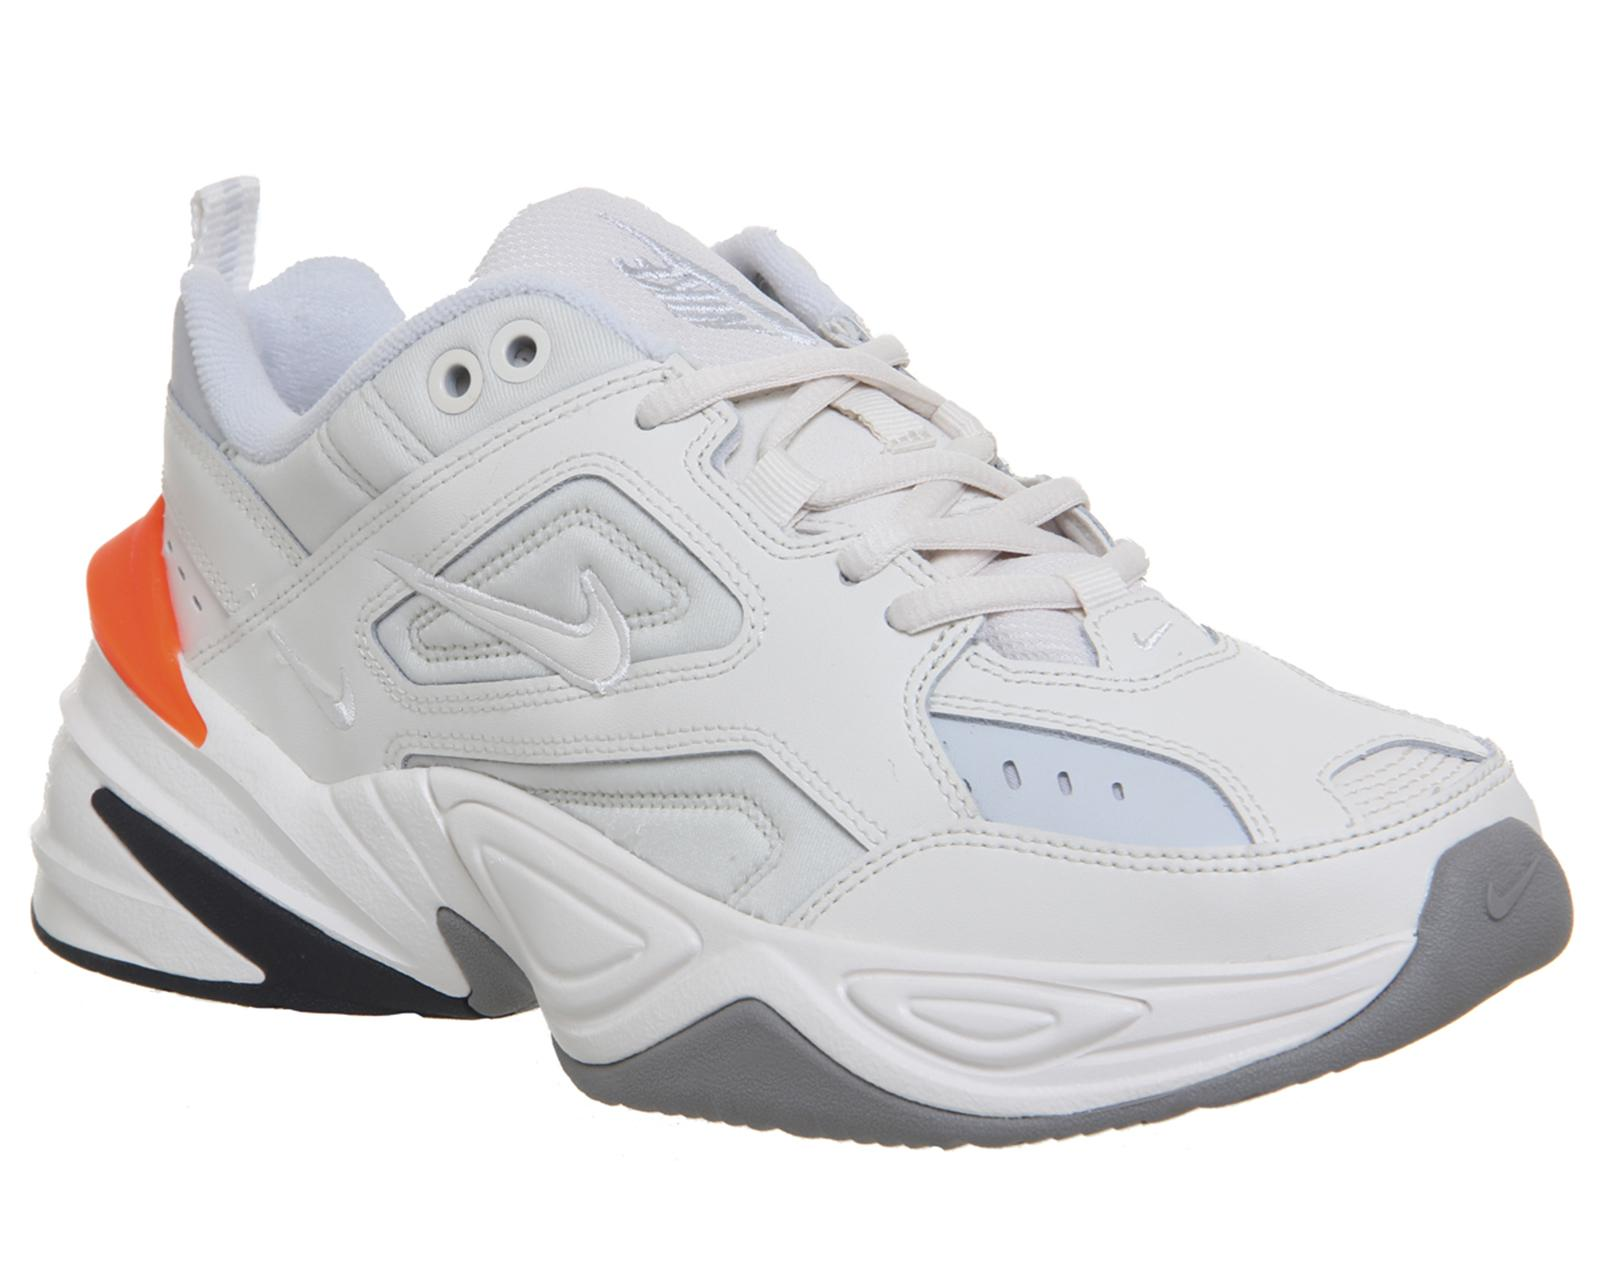 premium selection 20157 72b76 Lyst - Nike M2k Tekno Trainers in Gray